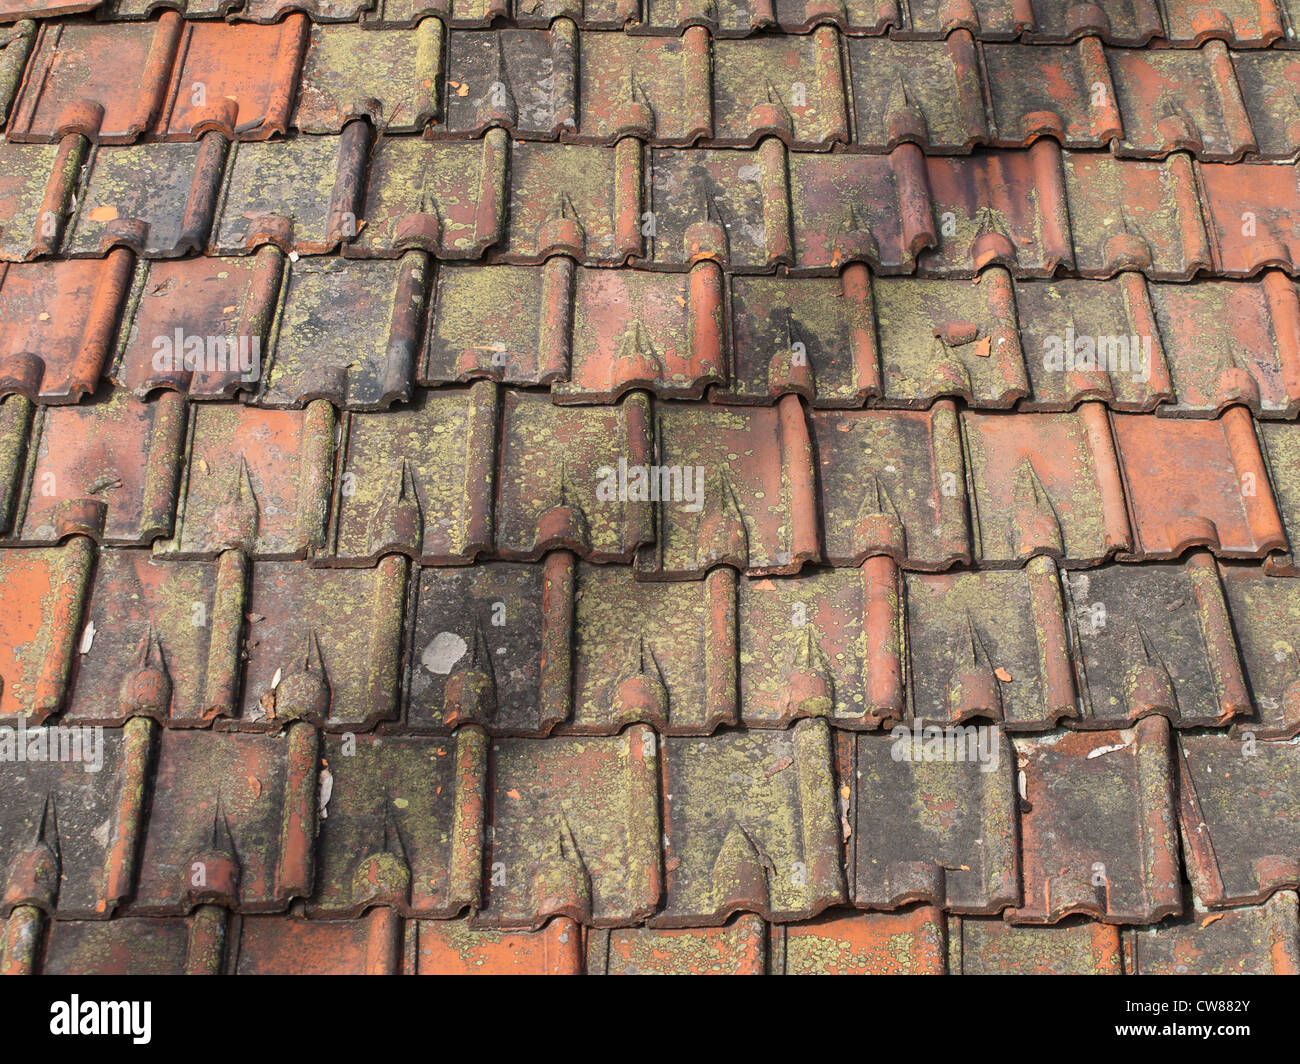 Old Roof Tiles Made From Clay In Varying Colors With